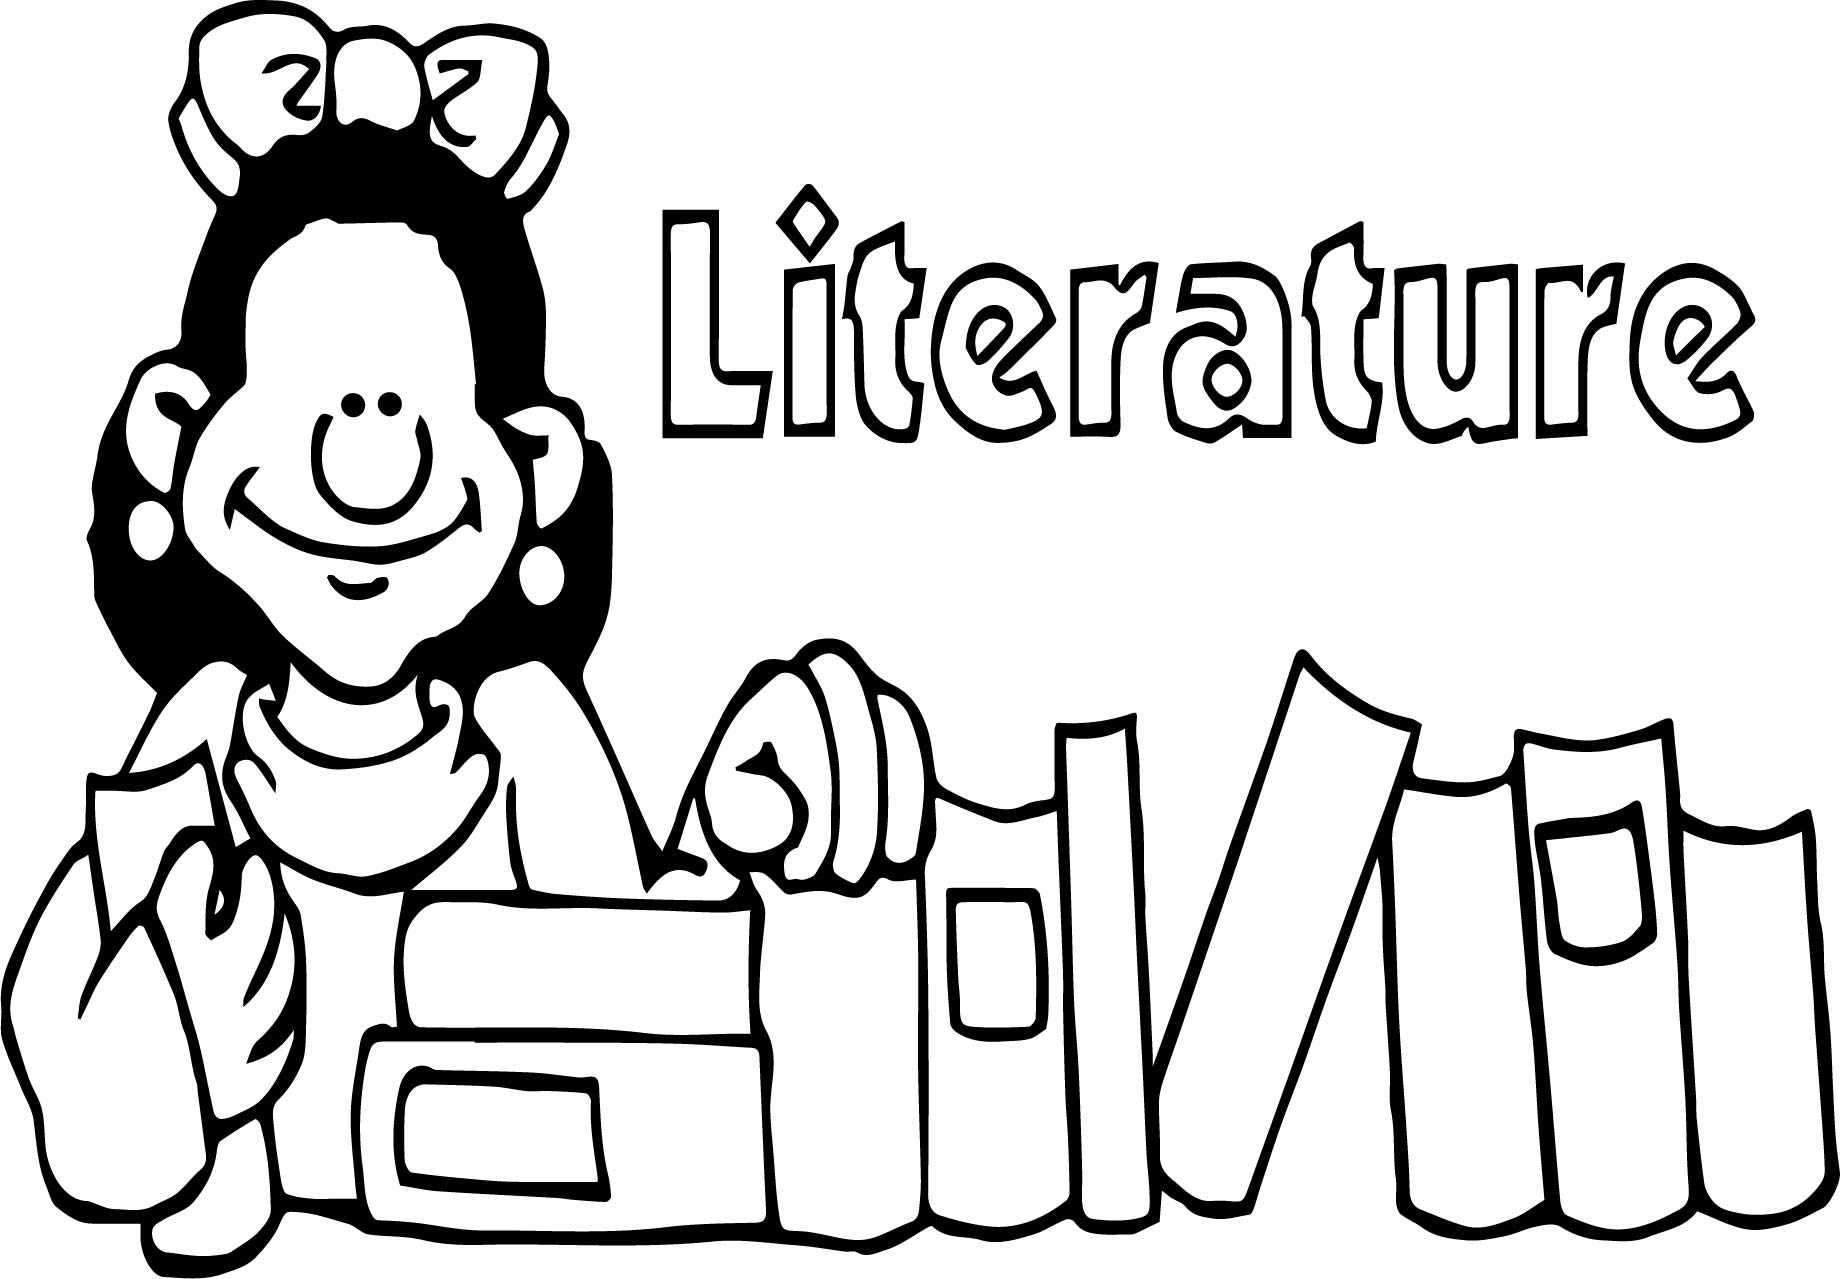 Literature Girl Coloring Page